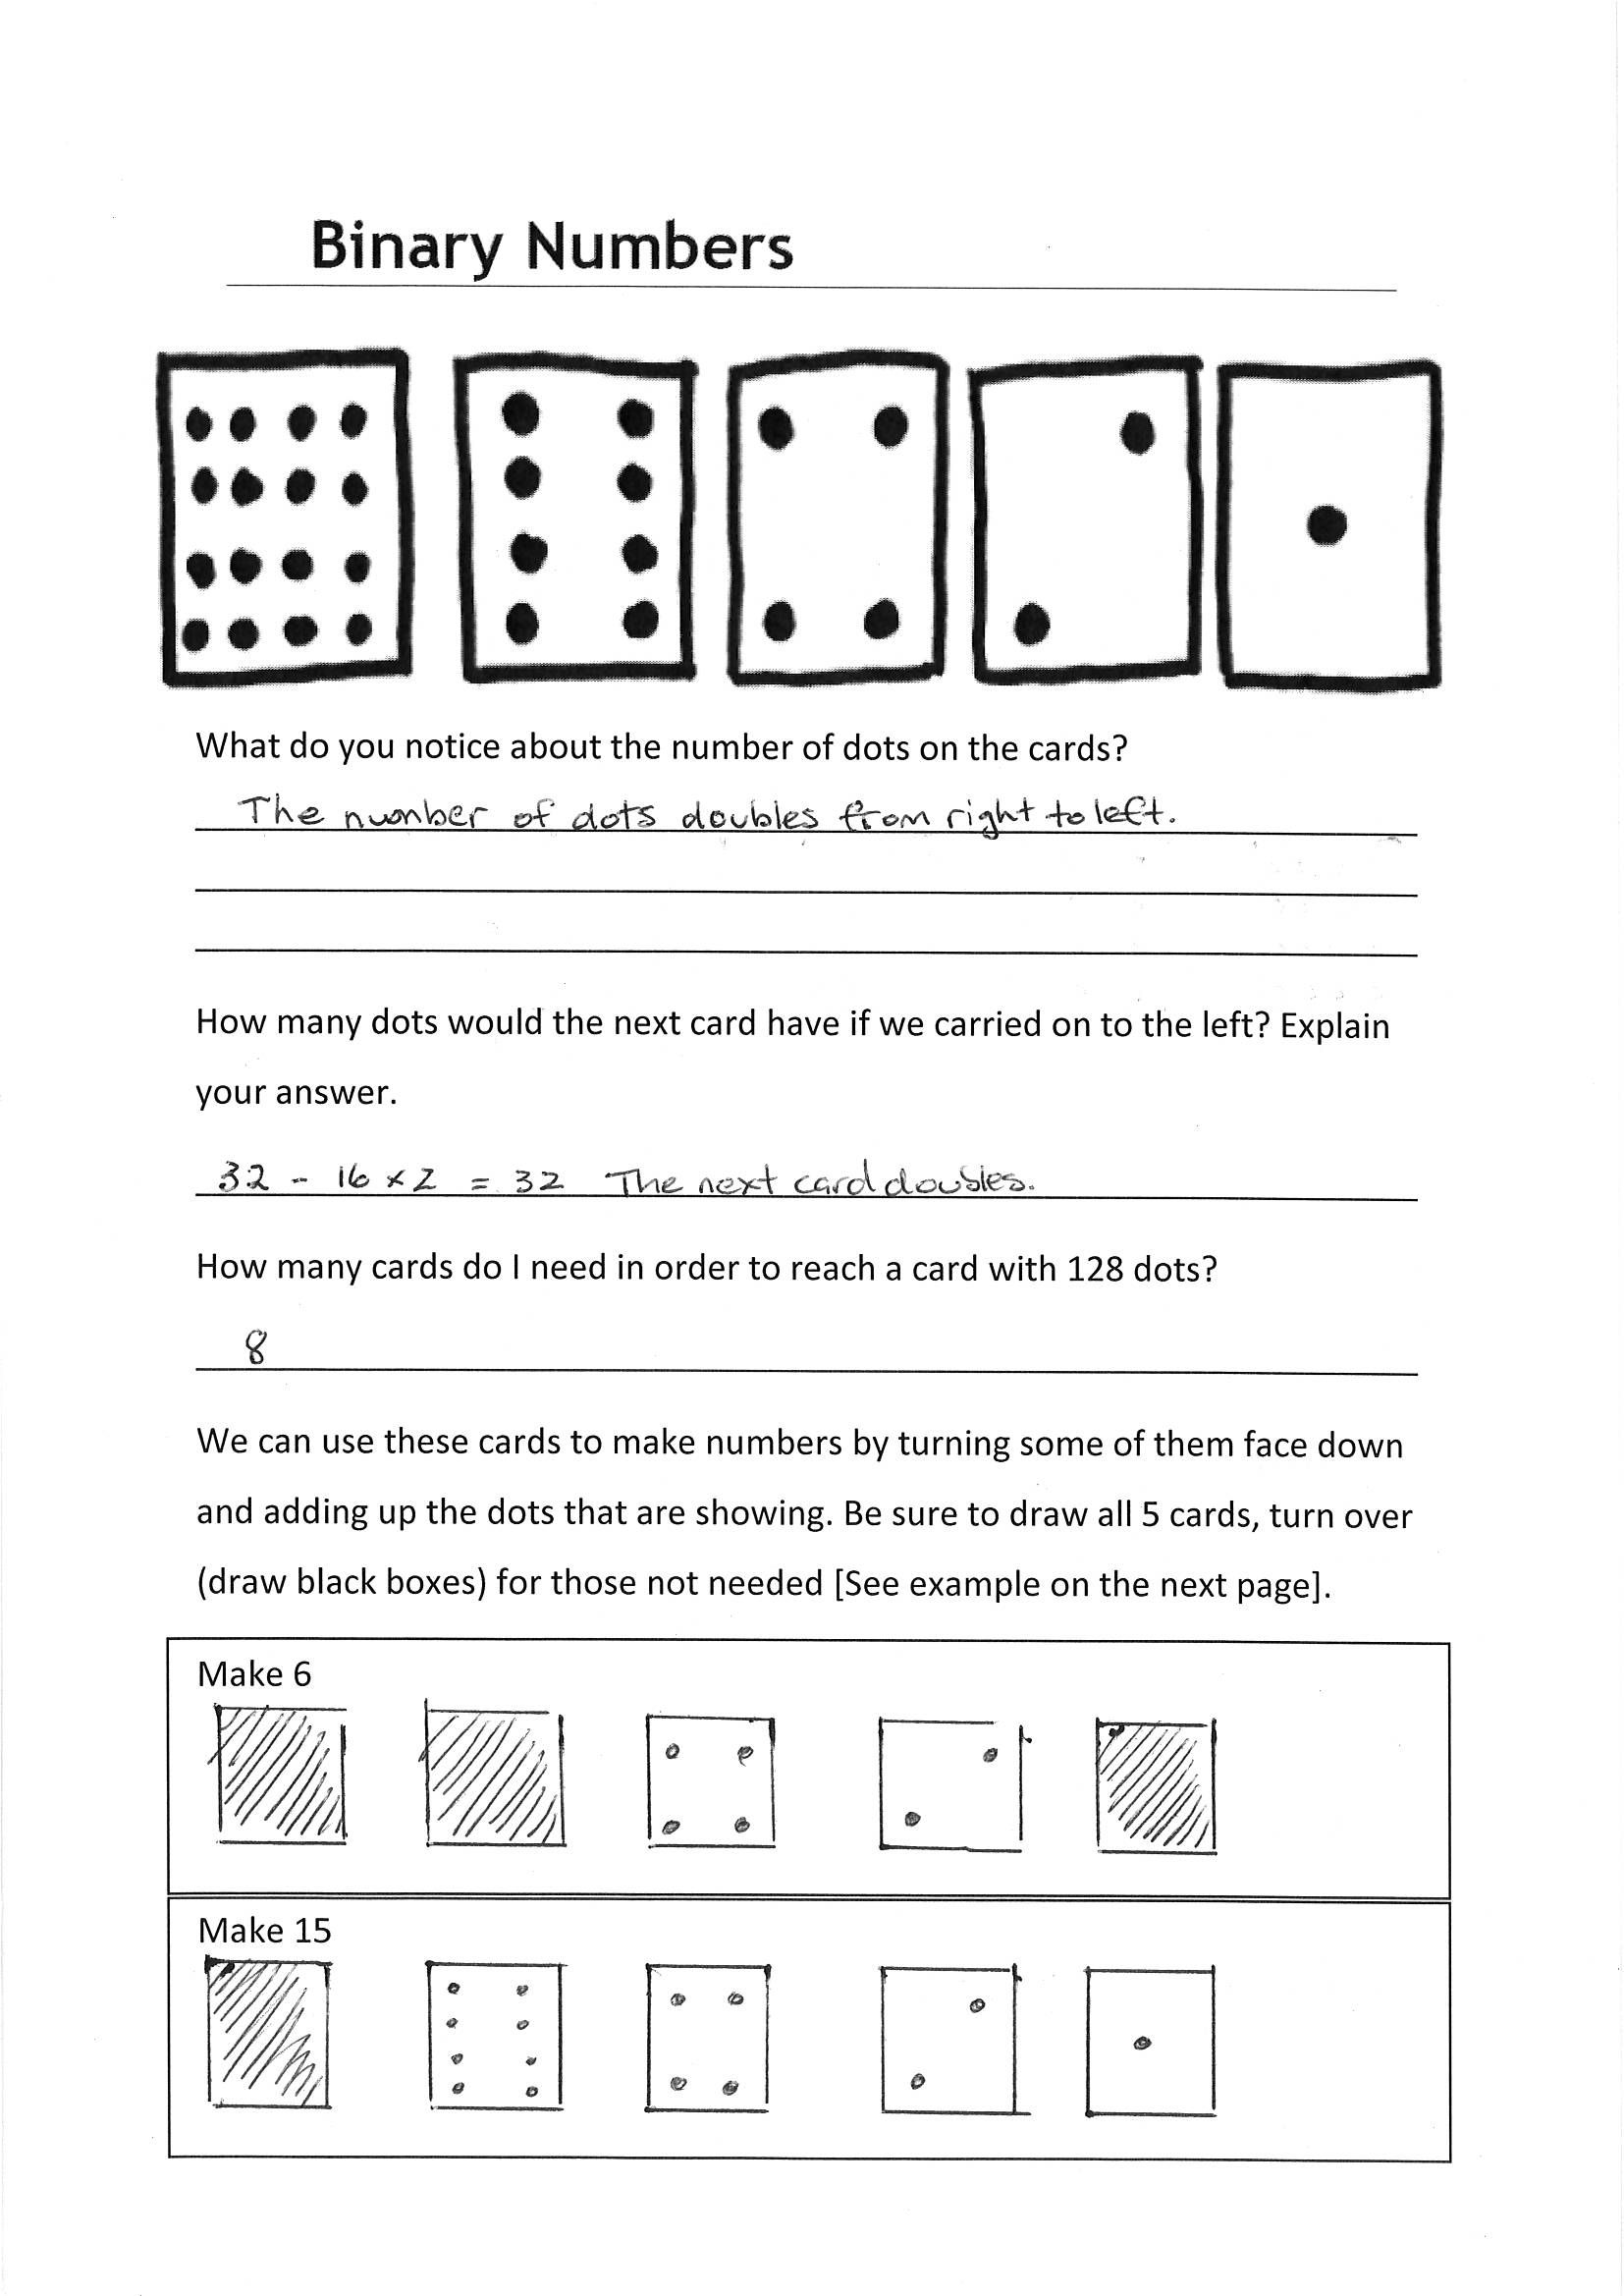 Worksheet: Whole numbers - ABOVE | The Australian Curriculum BINARy ...